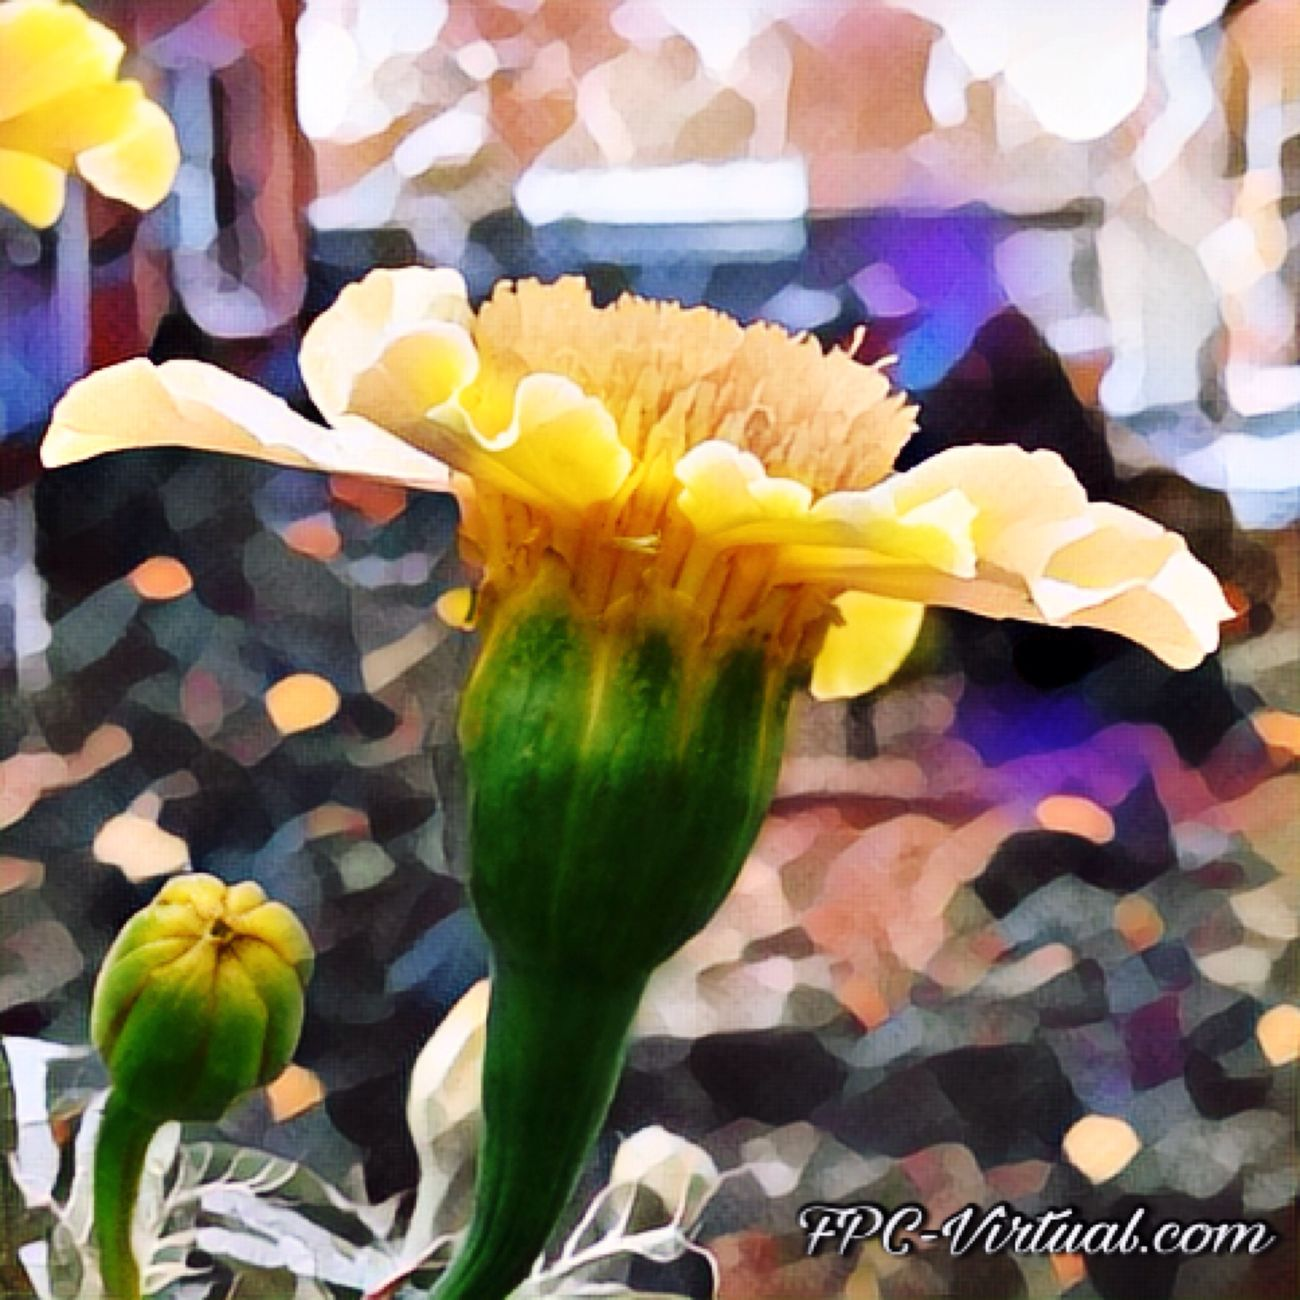 Love comes in many forms Flower Yellow Flower Head Beauty In Nature Close-up Photography Picsart